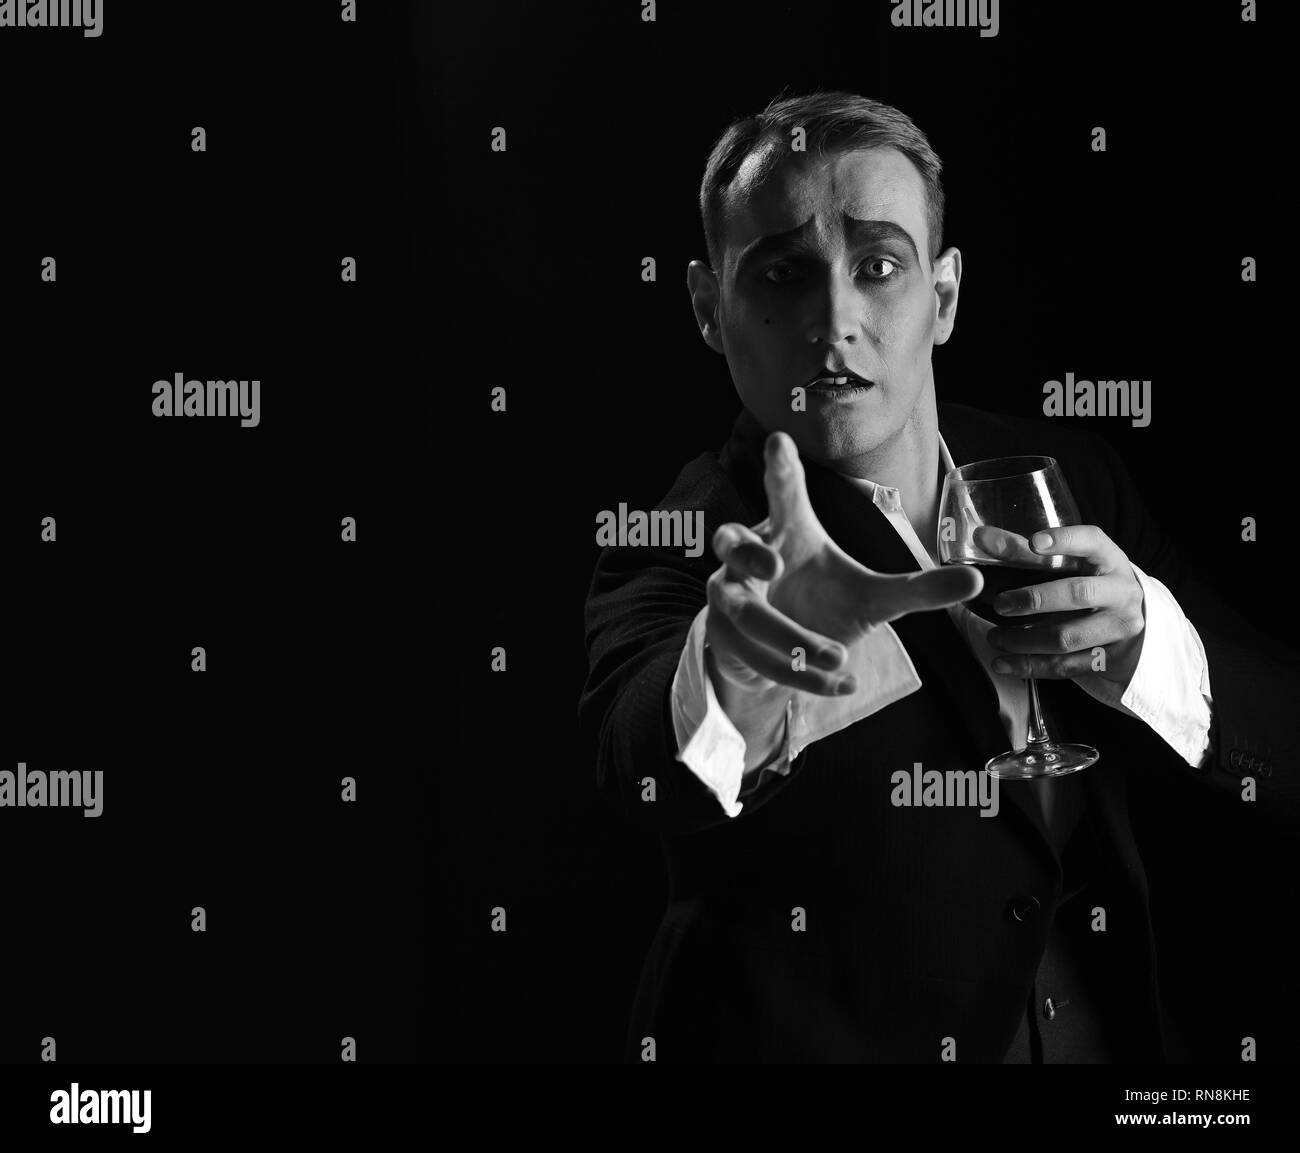 Where are you. Stage actor pantomime drinking wine. Comedian with mime makeup hold wine glass. Mime artist perform on stage. Drama theatre actor - Stock Image